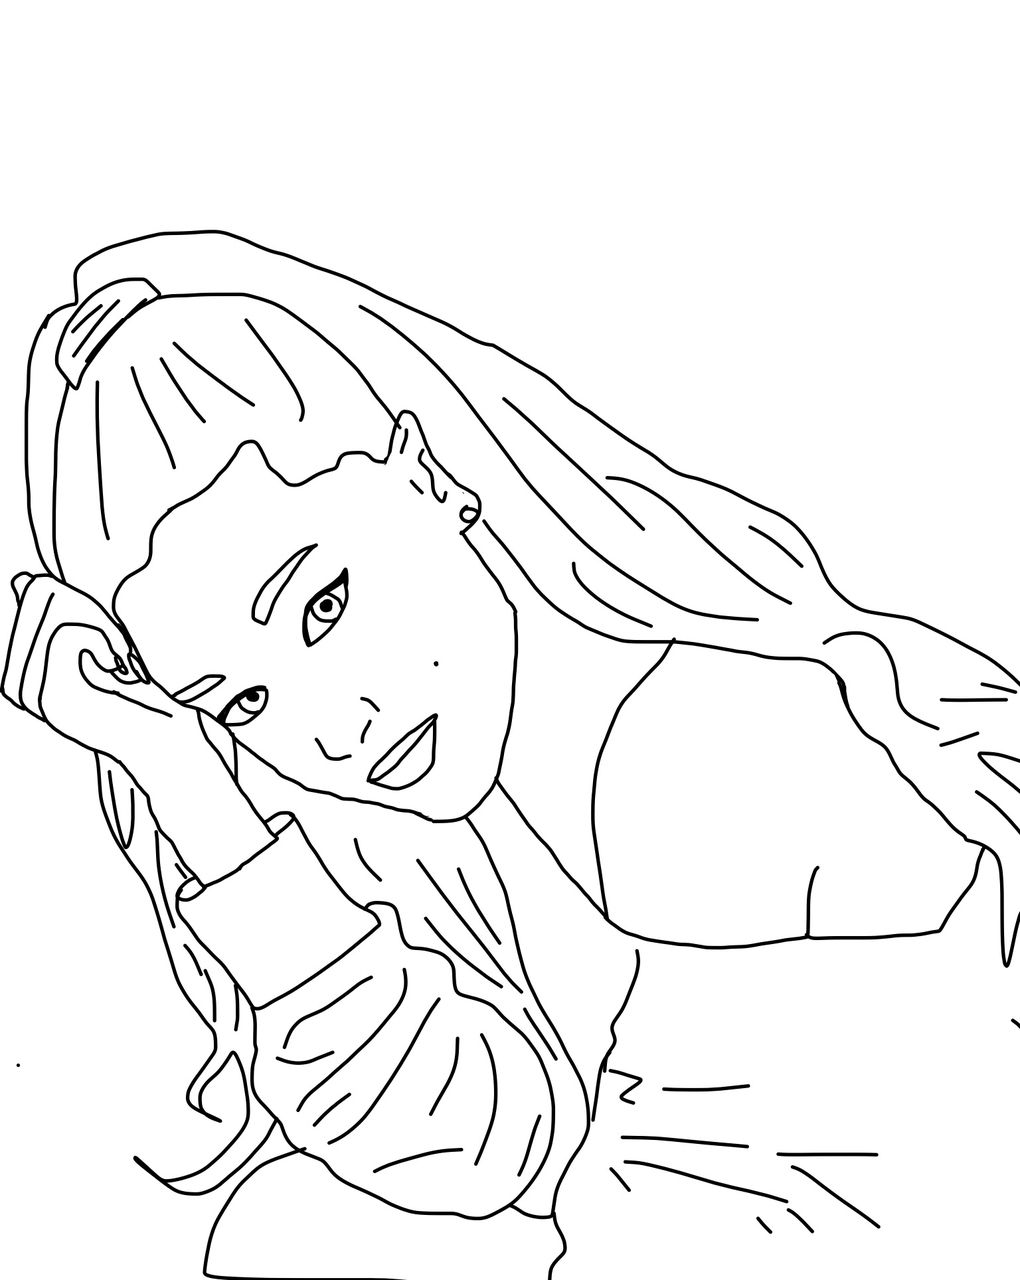 ariana grande drawing break free  Google Search  Ariana grande drawings  Pinterest  Break